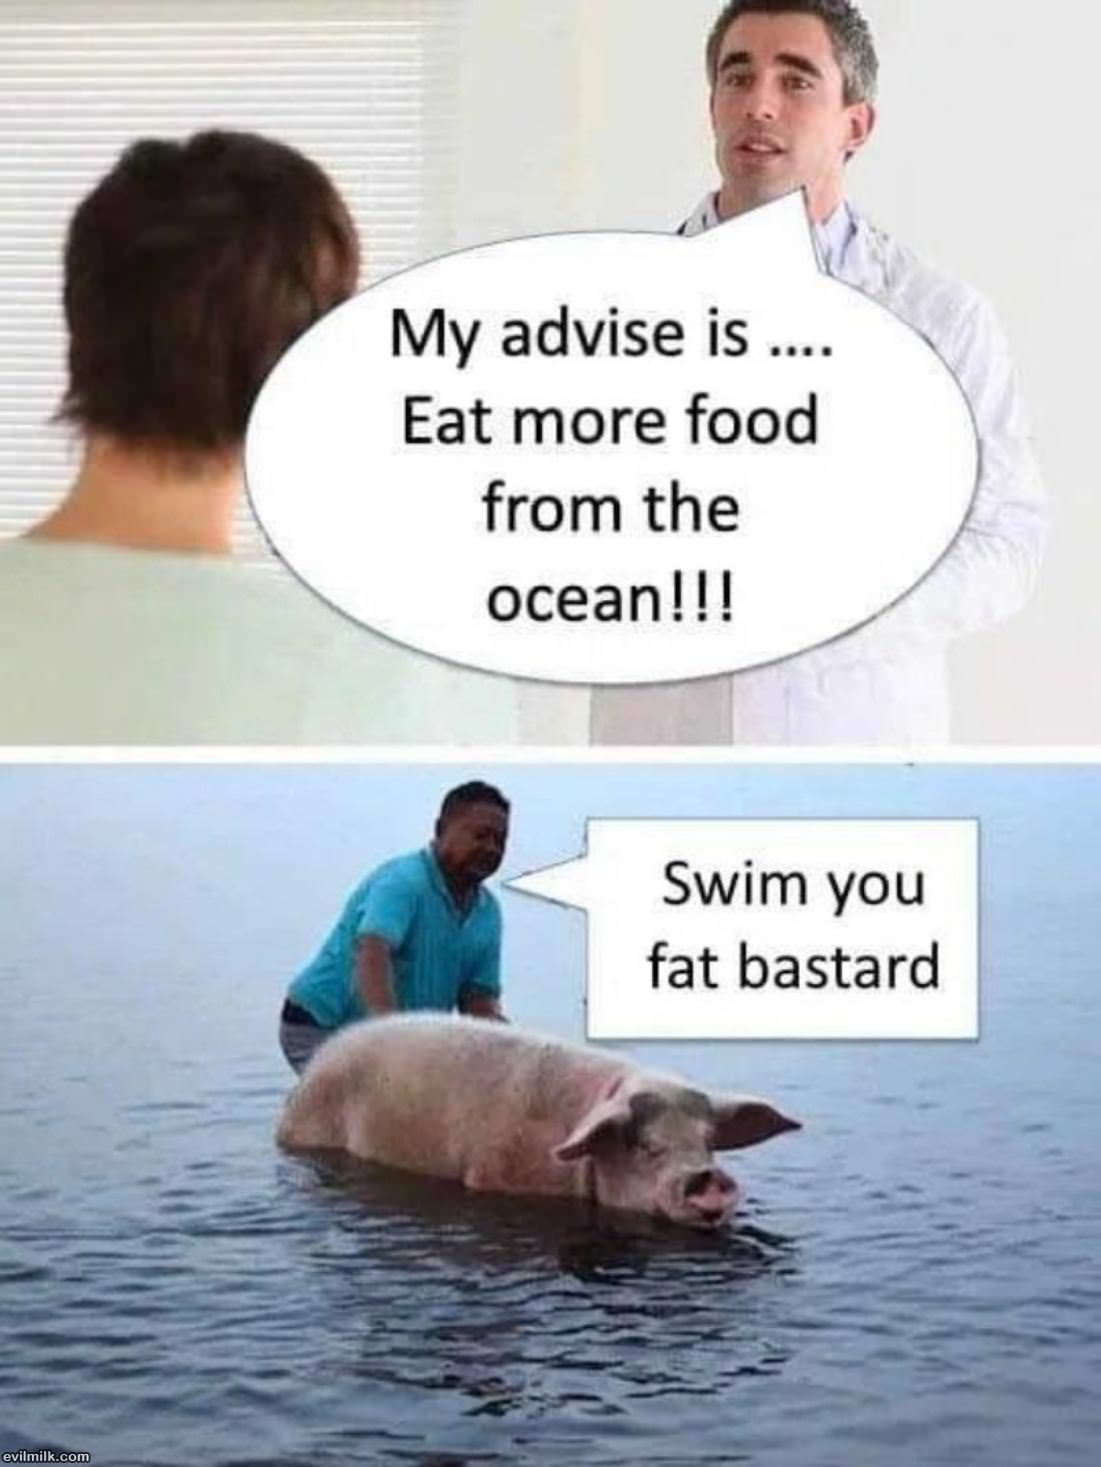 Eat More Ocean Food